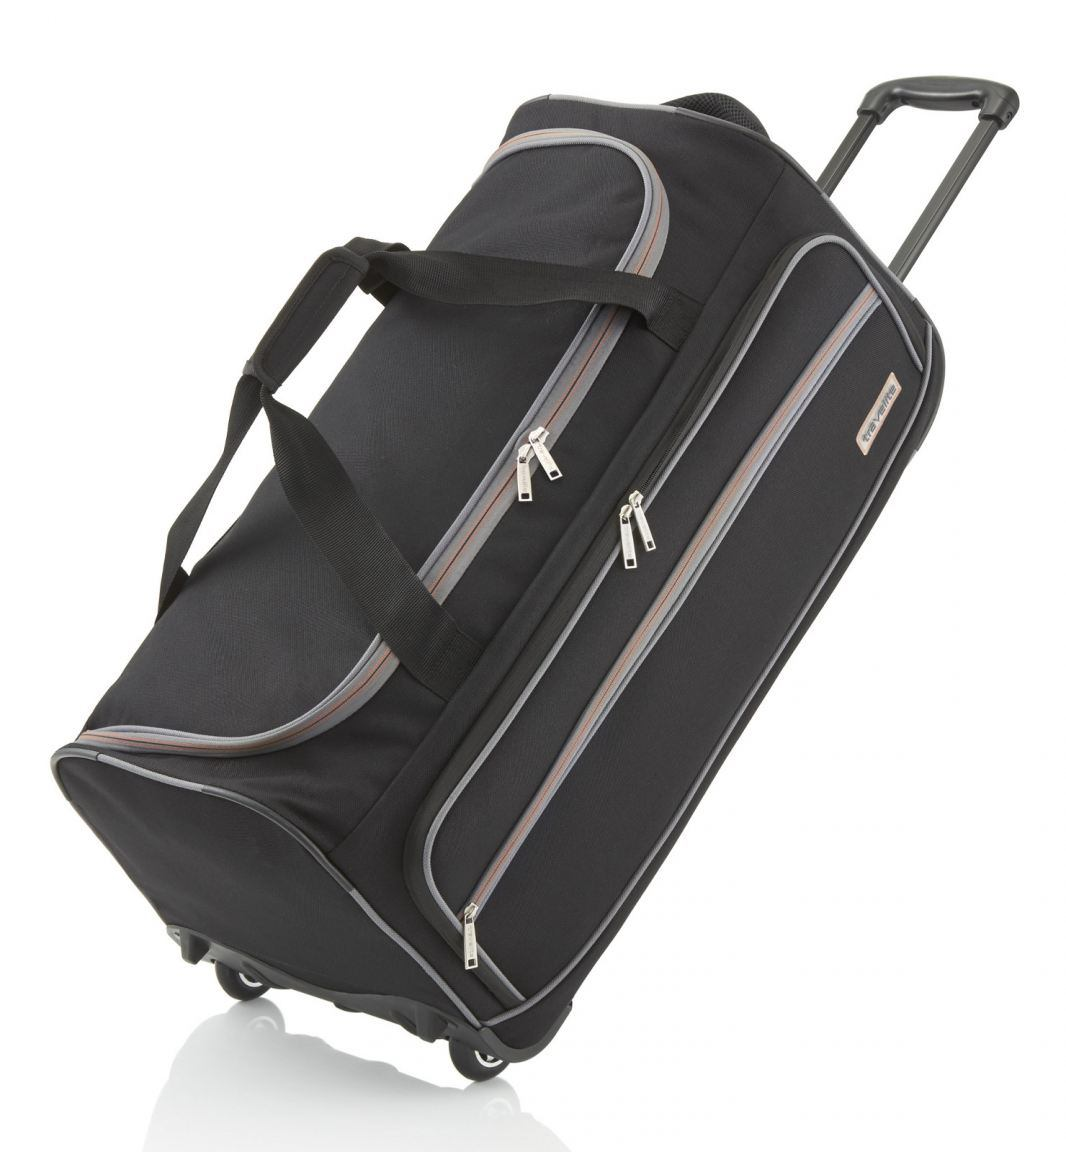 travelite trolley reisetasche xl 70cm schwarz bags more. Black Bedroom Furniture Sets. Home Design Ideas